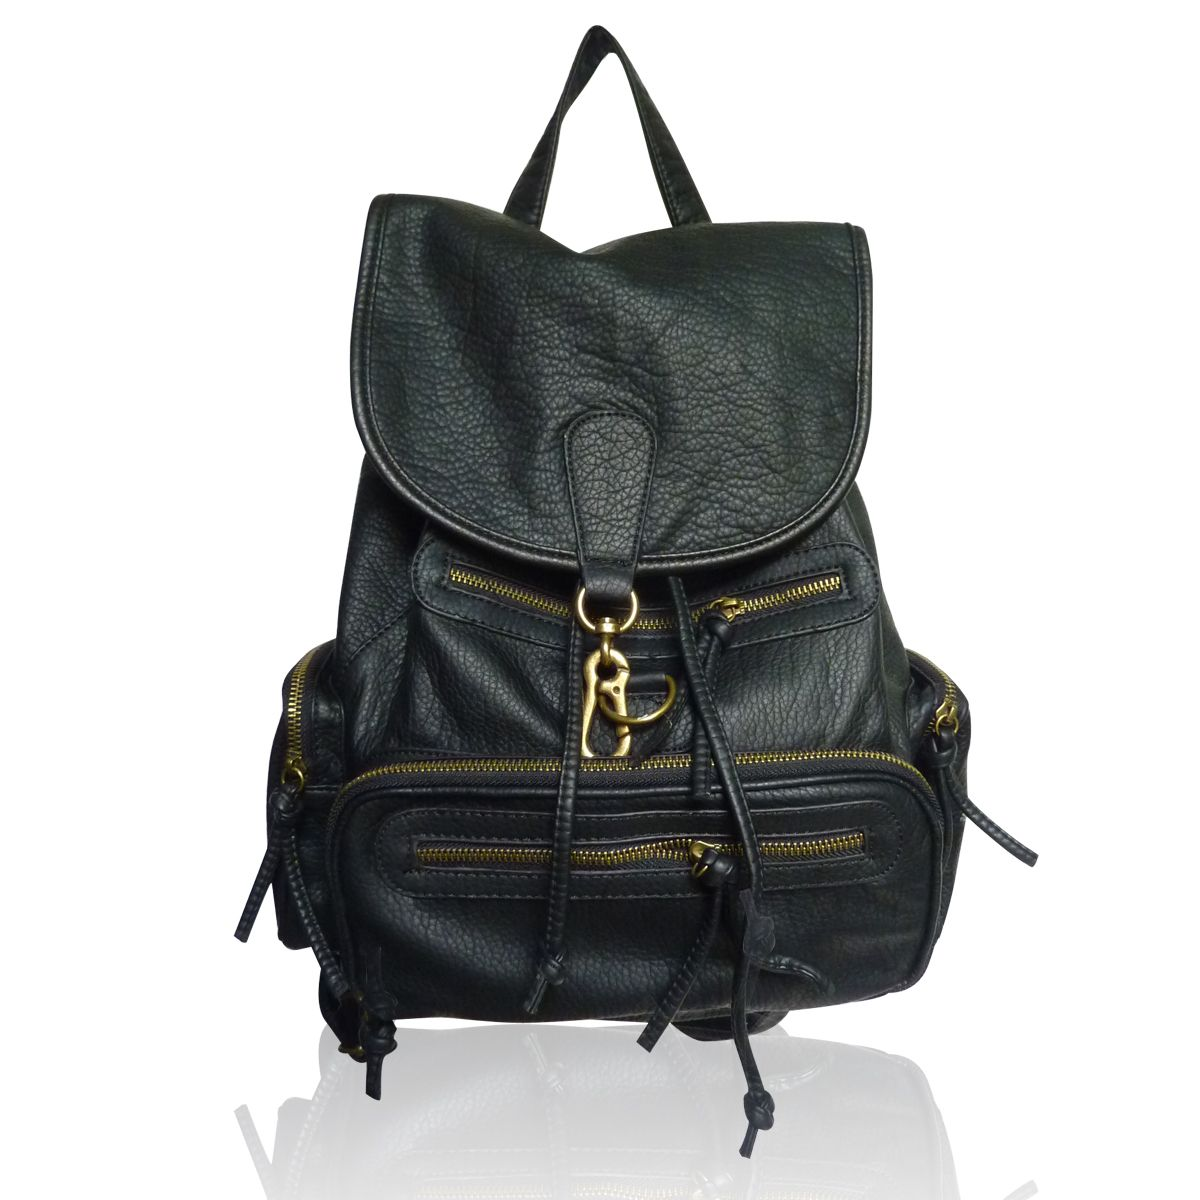 The Lincoln Rucksack by Anna Smith in Black - LYDC